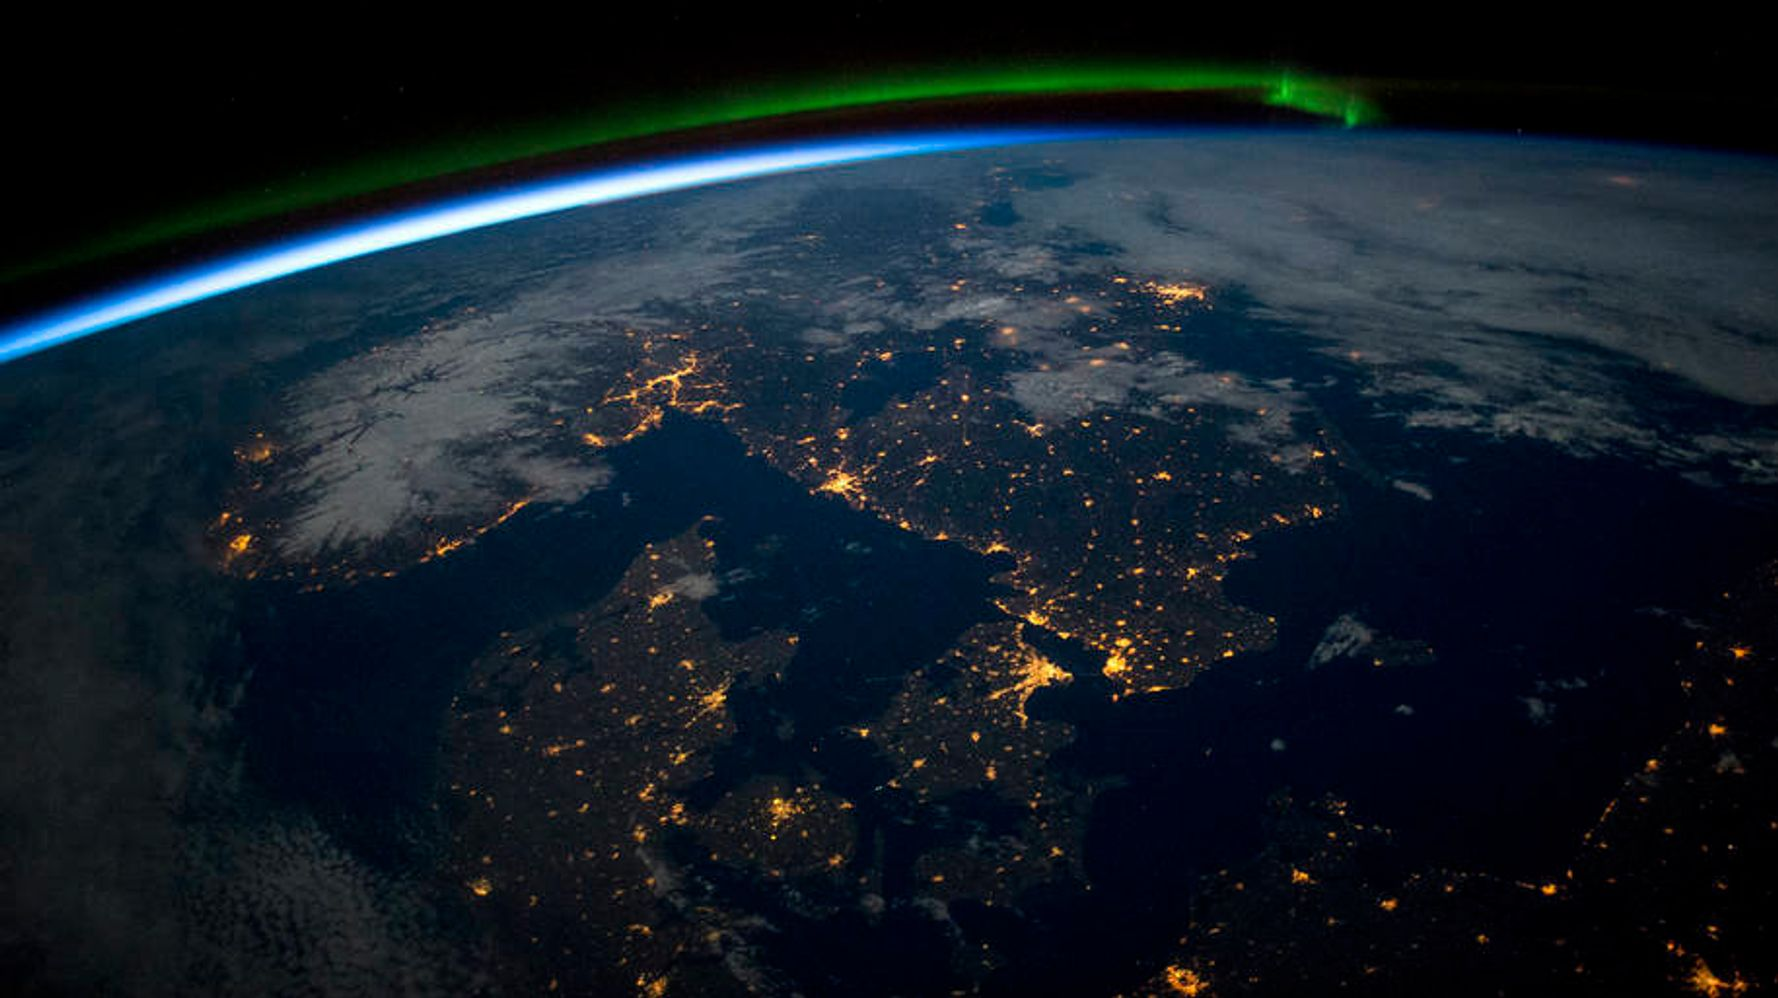 These Are NASA's Favorite Earth Photos Of 2015, And They're Quite Spectacular